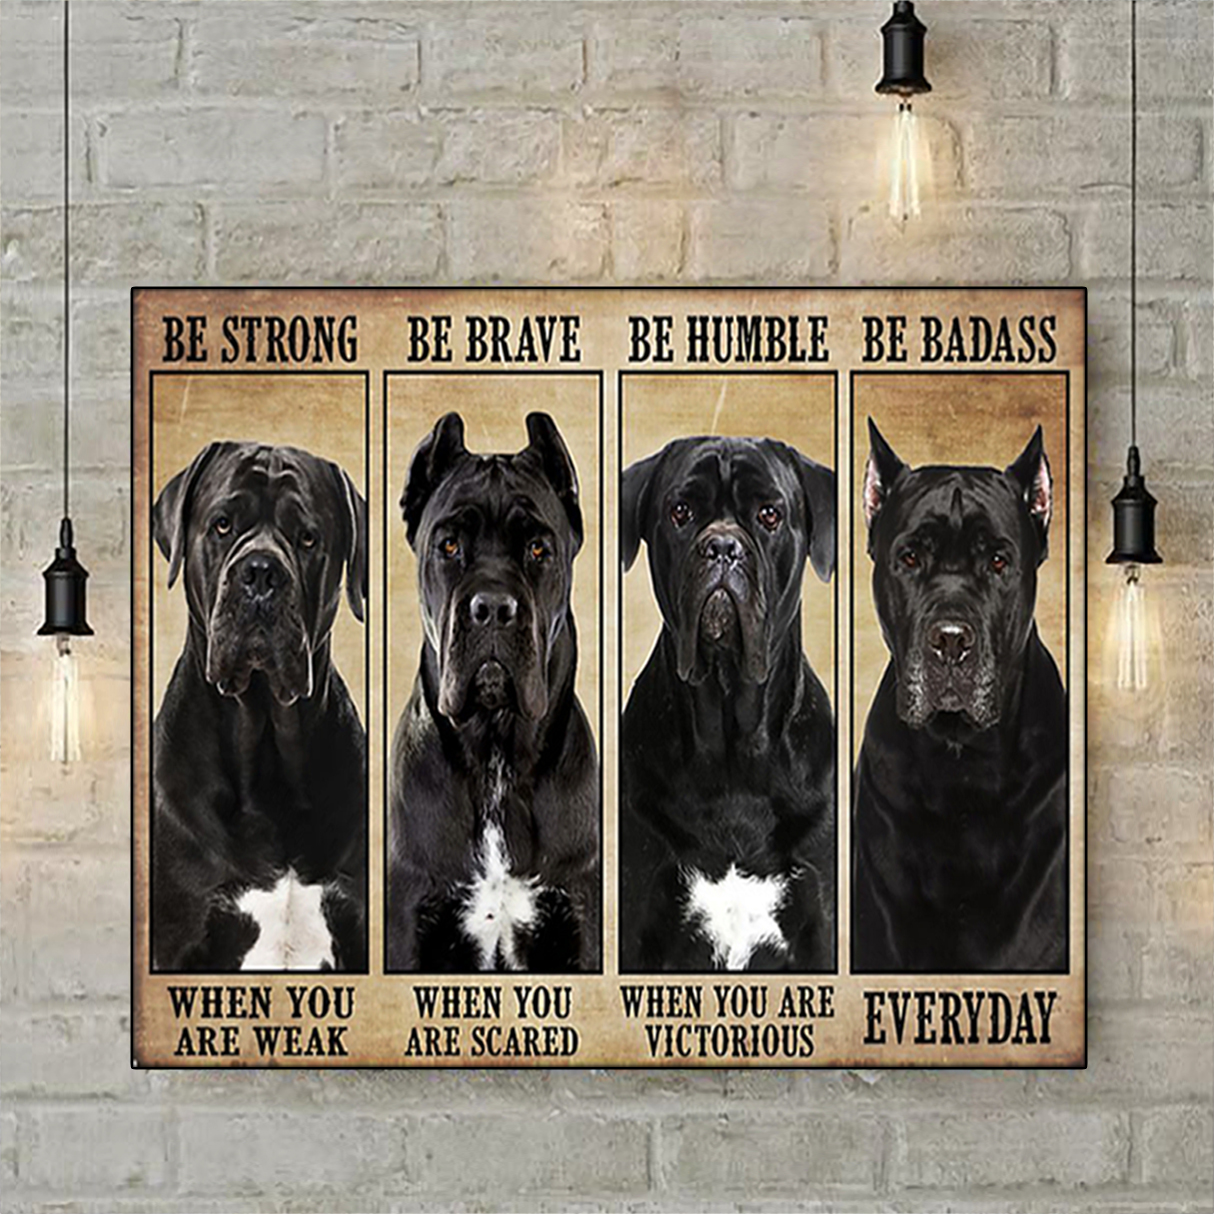 Cane corso be strong be brave be humble be badass poster A2